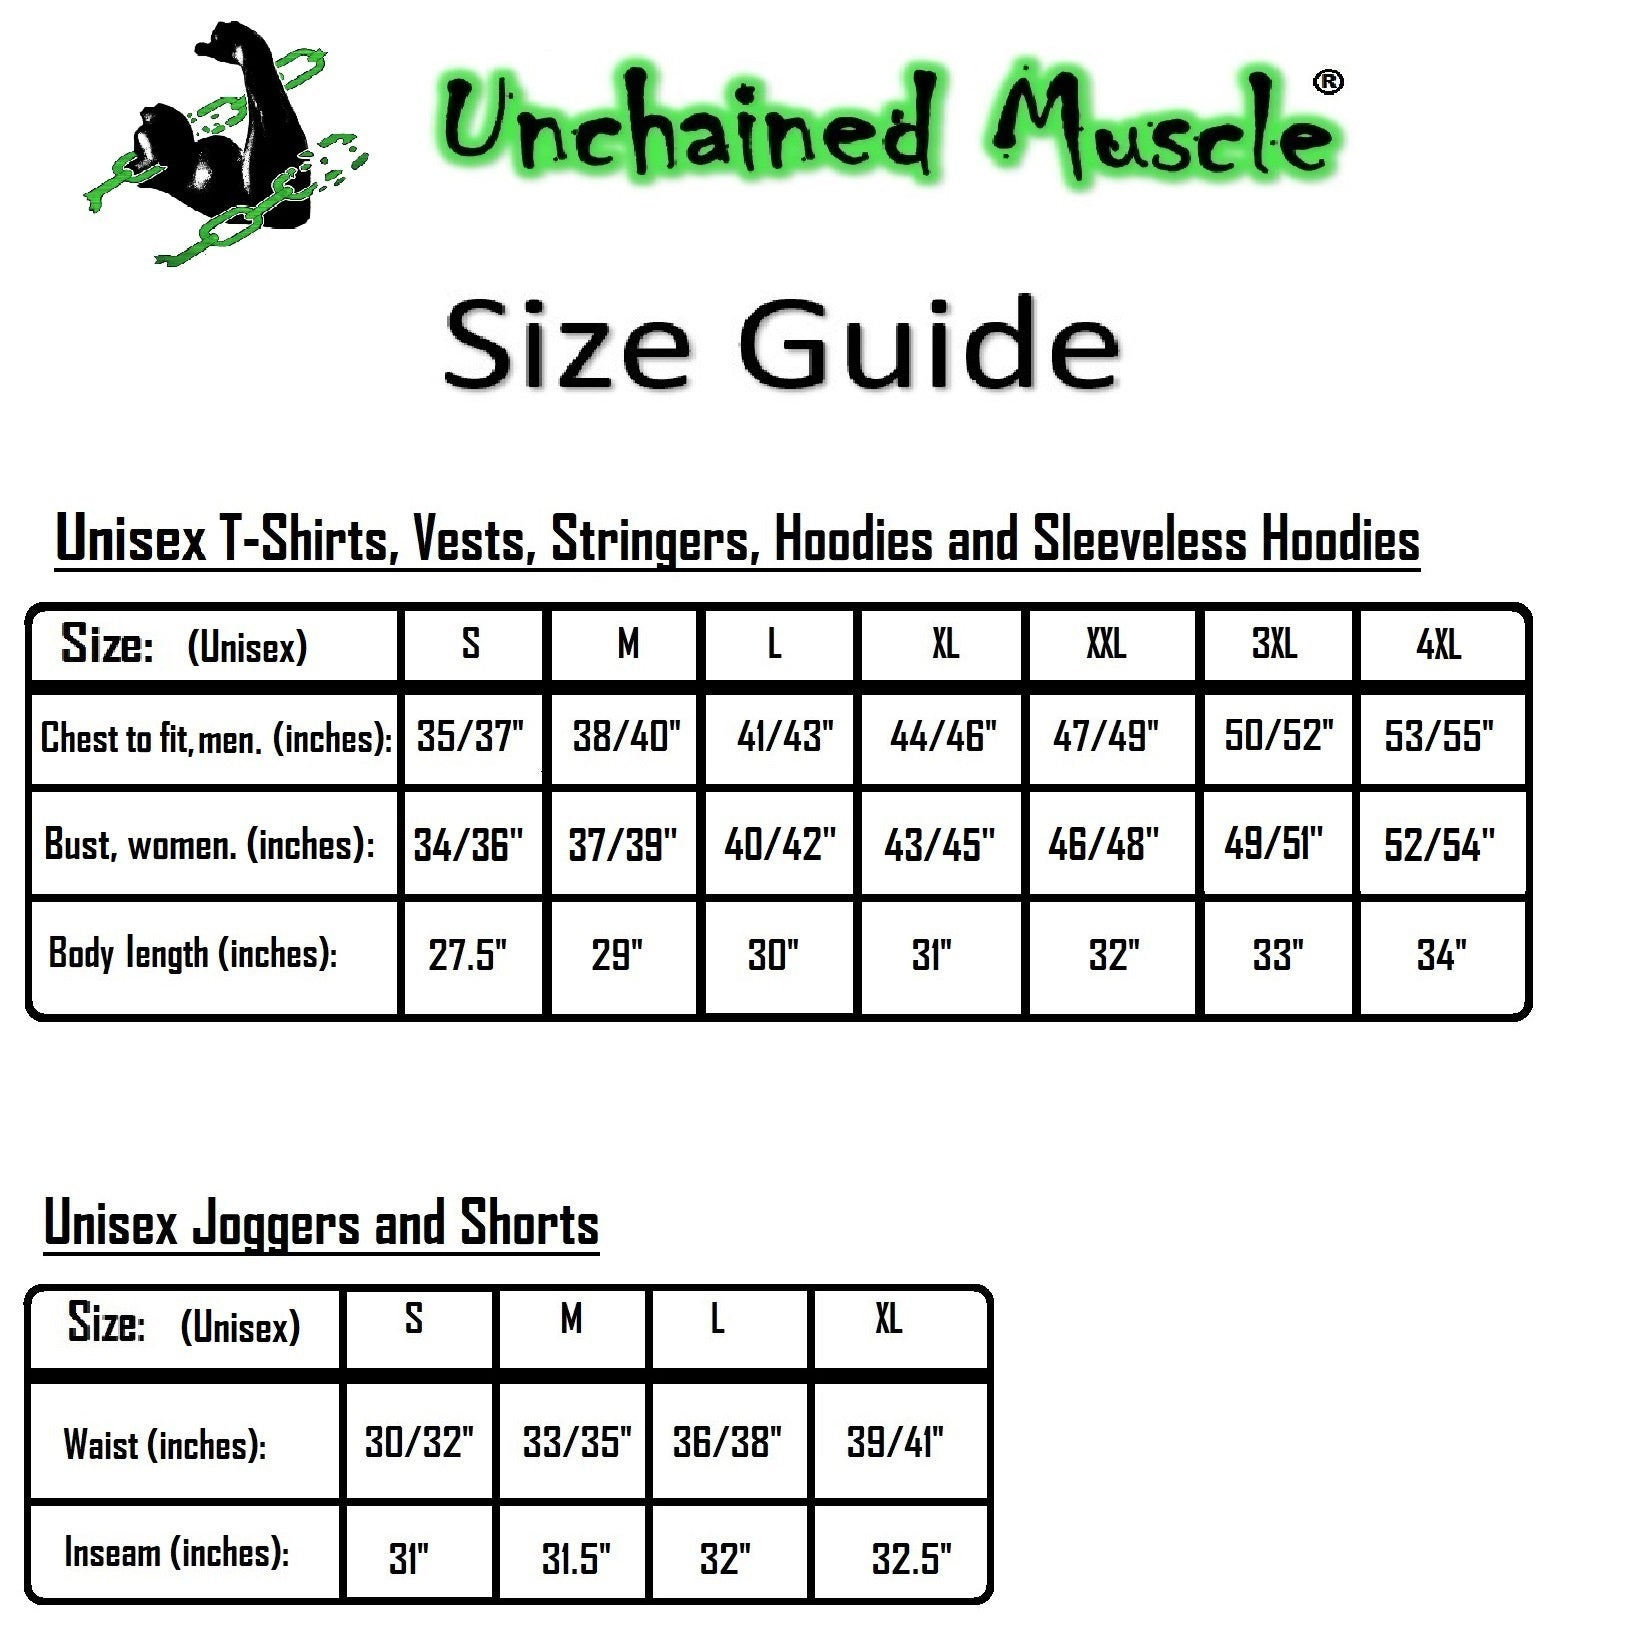 Unchained Muscle Size Guide